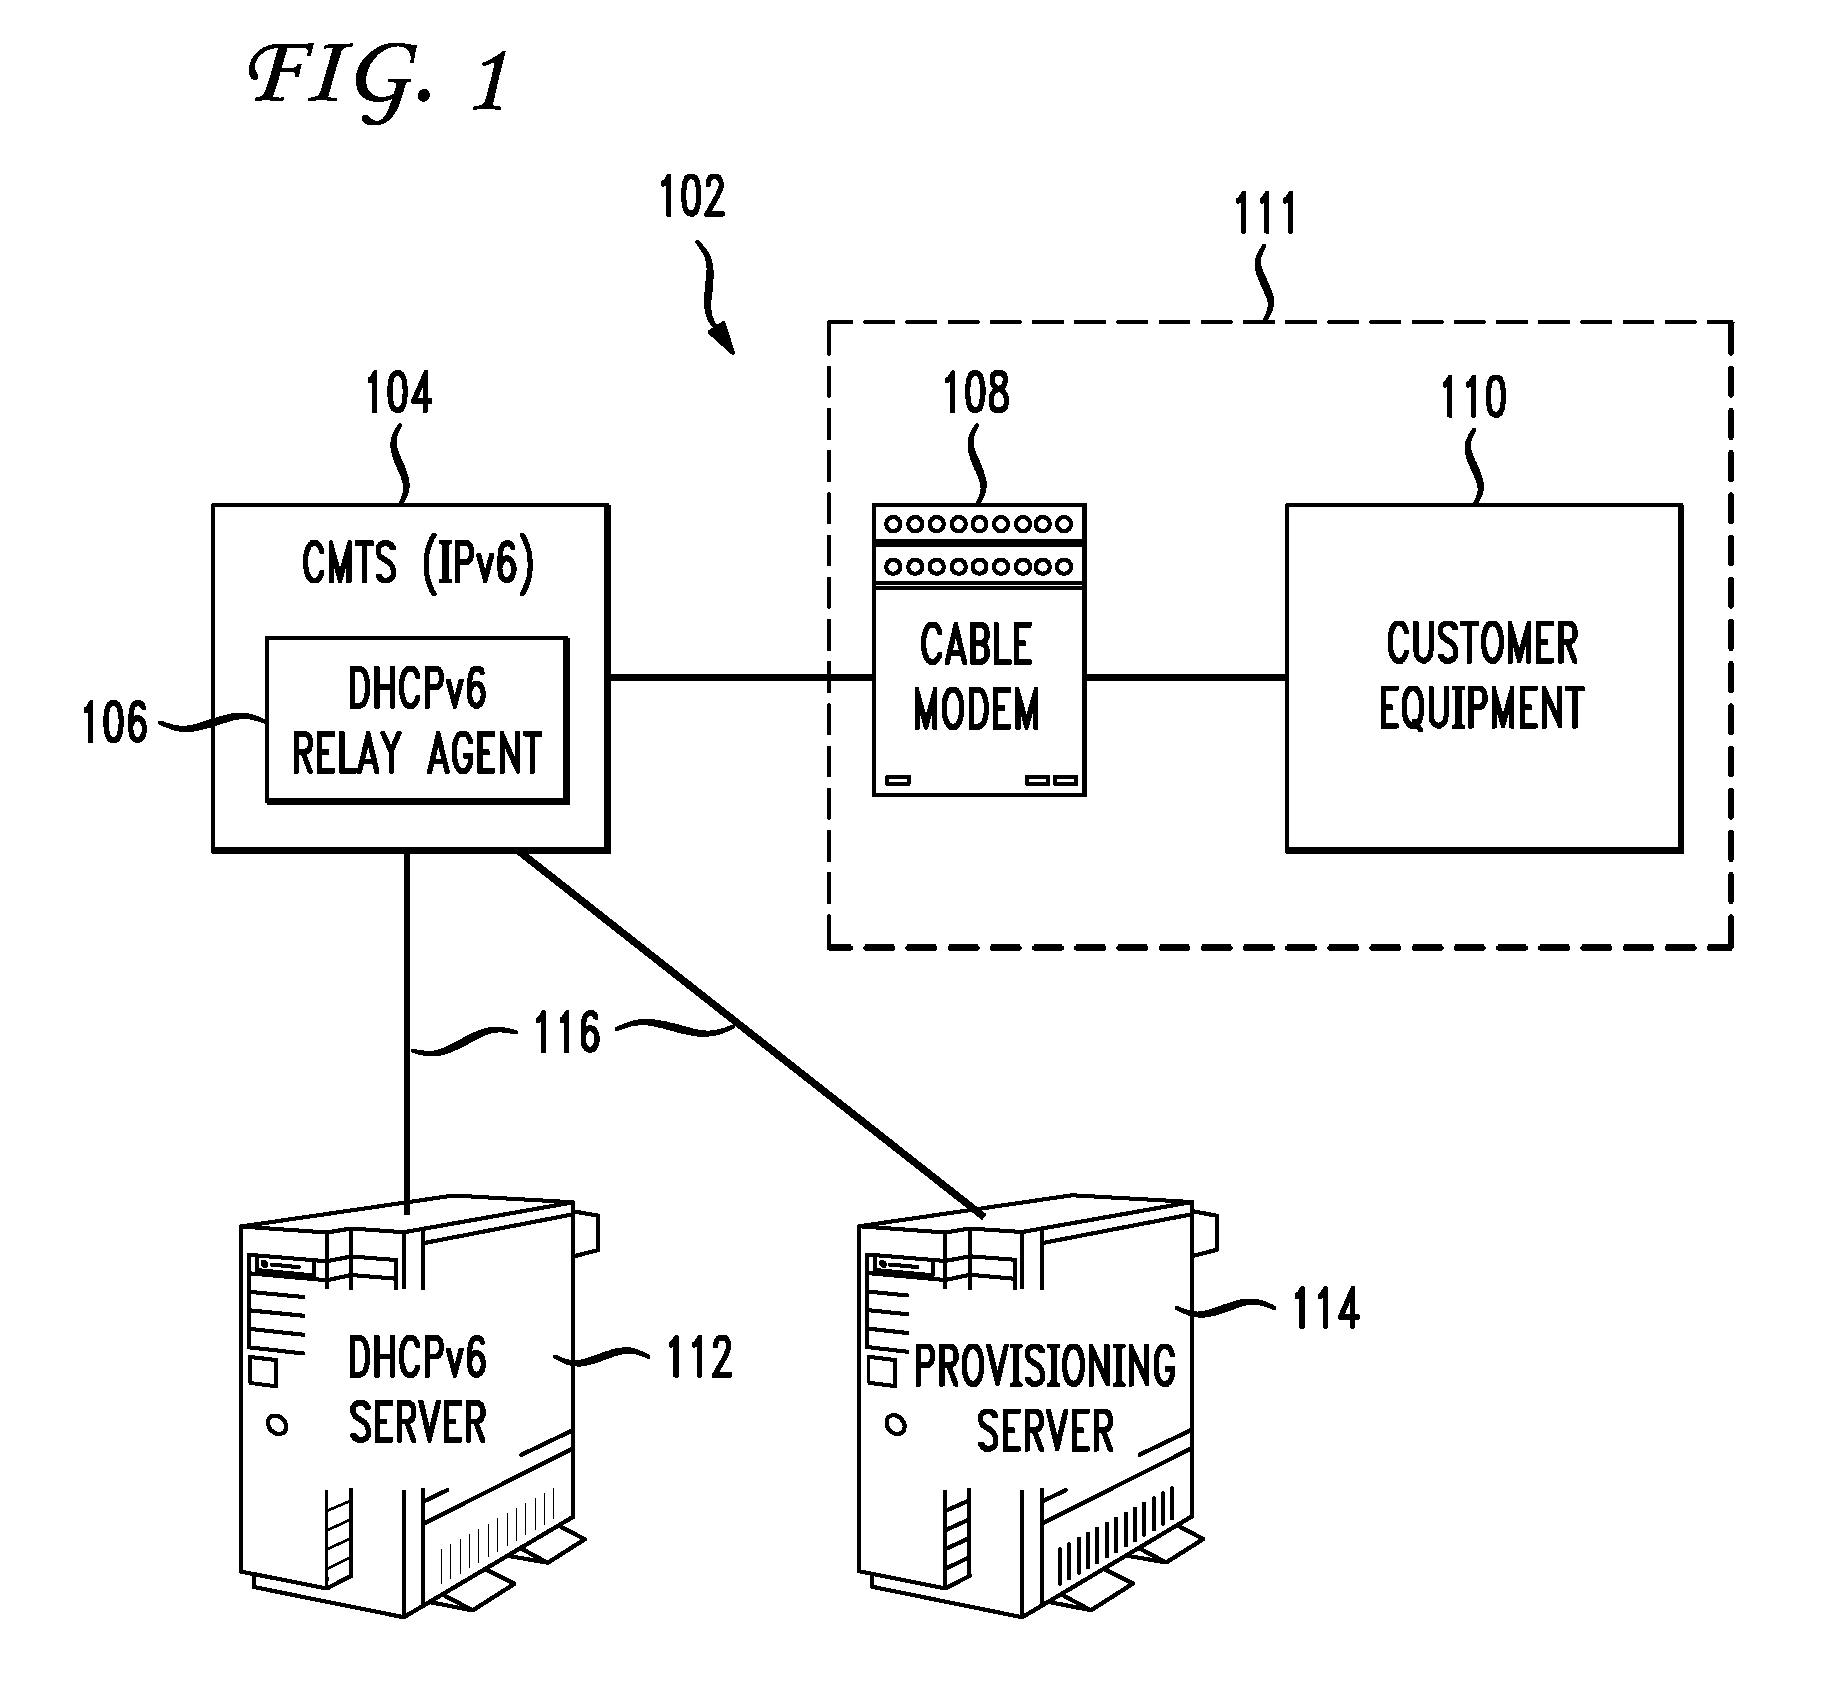 Afully Digital Docsis Cmts Receiverreprinted Nve Media Cable Tv Network Diagram All About Technologycmts Headends Brevet Us8437360 Stateful Dhcpv6 Relay Agent In A Modem Computer Schematic Block